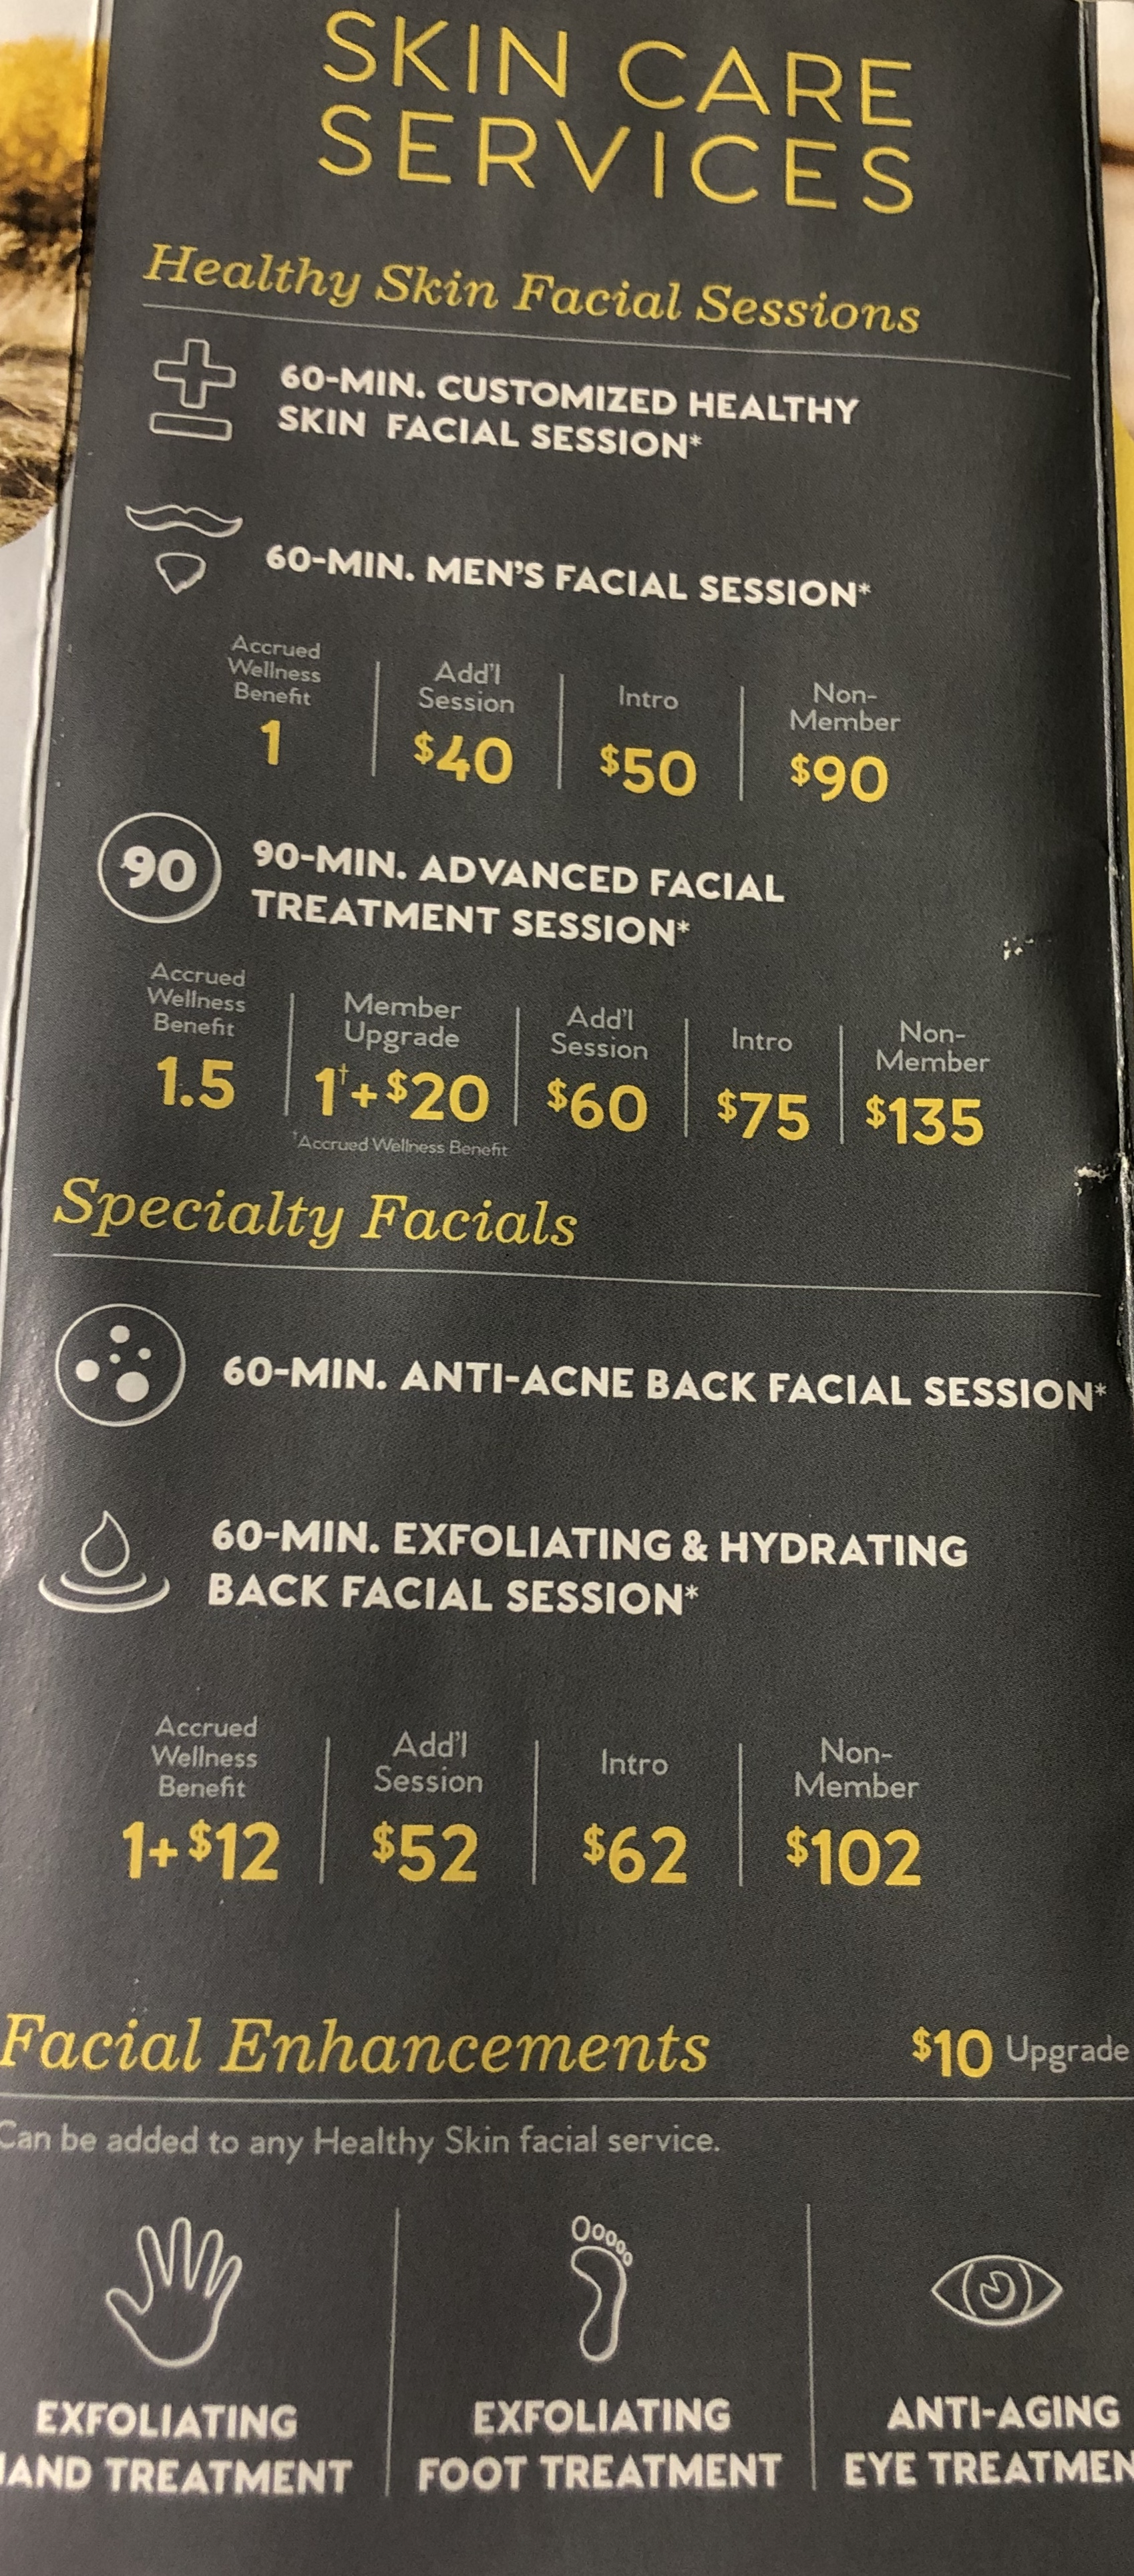 Additional Facial Add On's Available